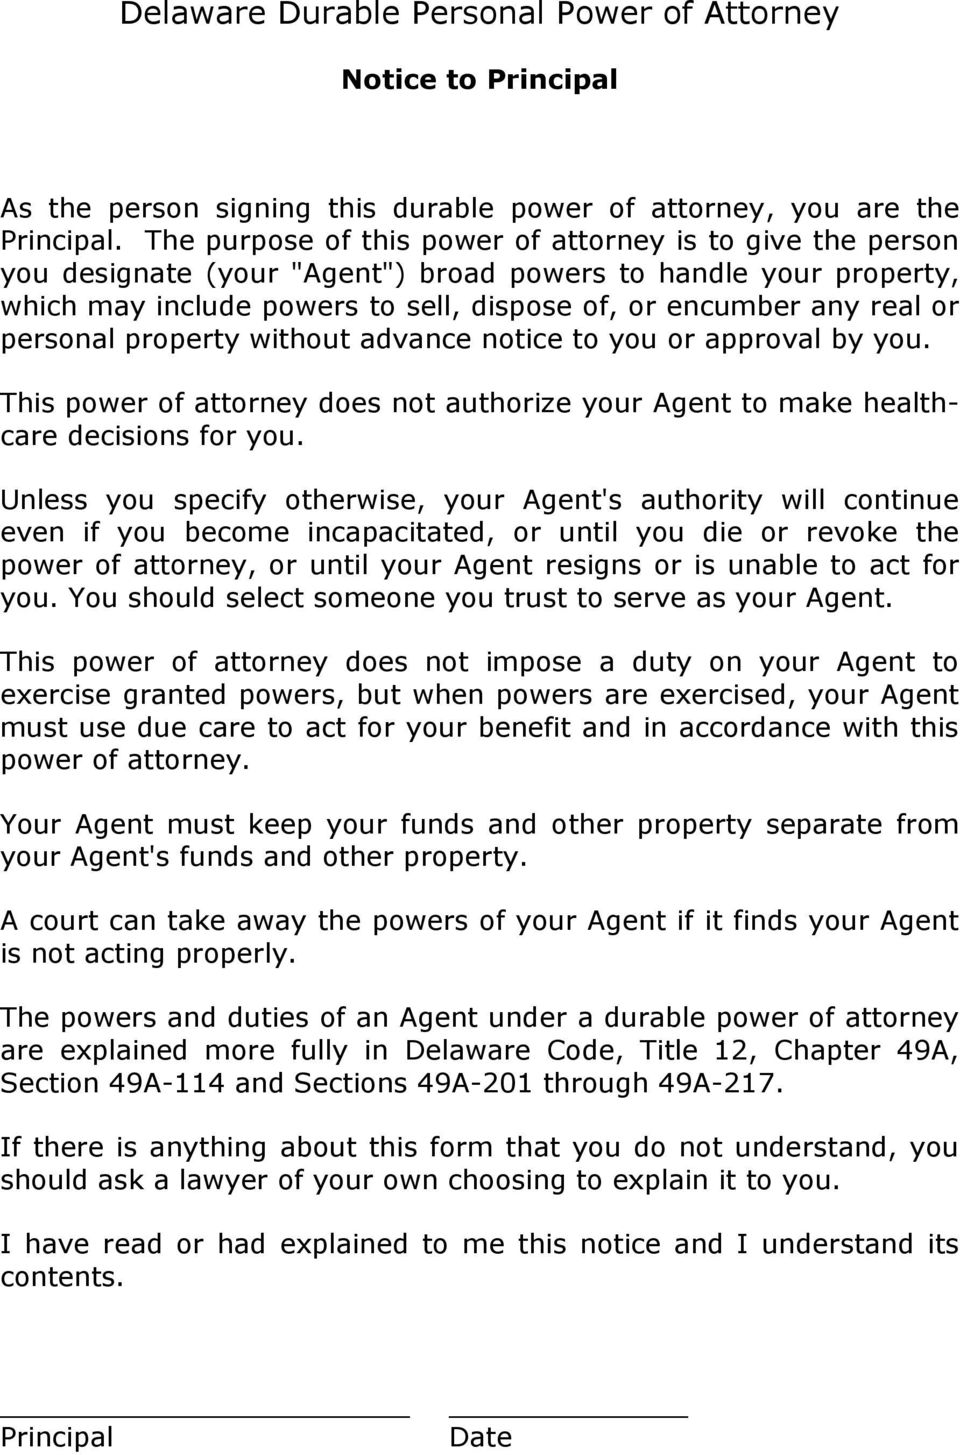 personal property without advance notice to you or approval by you. This power of attorney does not authorize your Agent to make healthcare decisions for you.